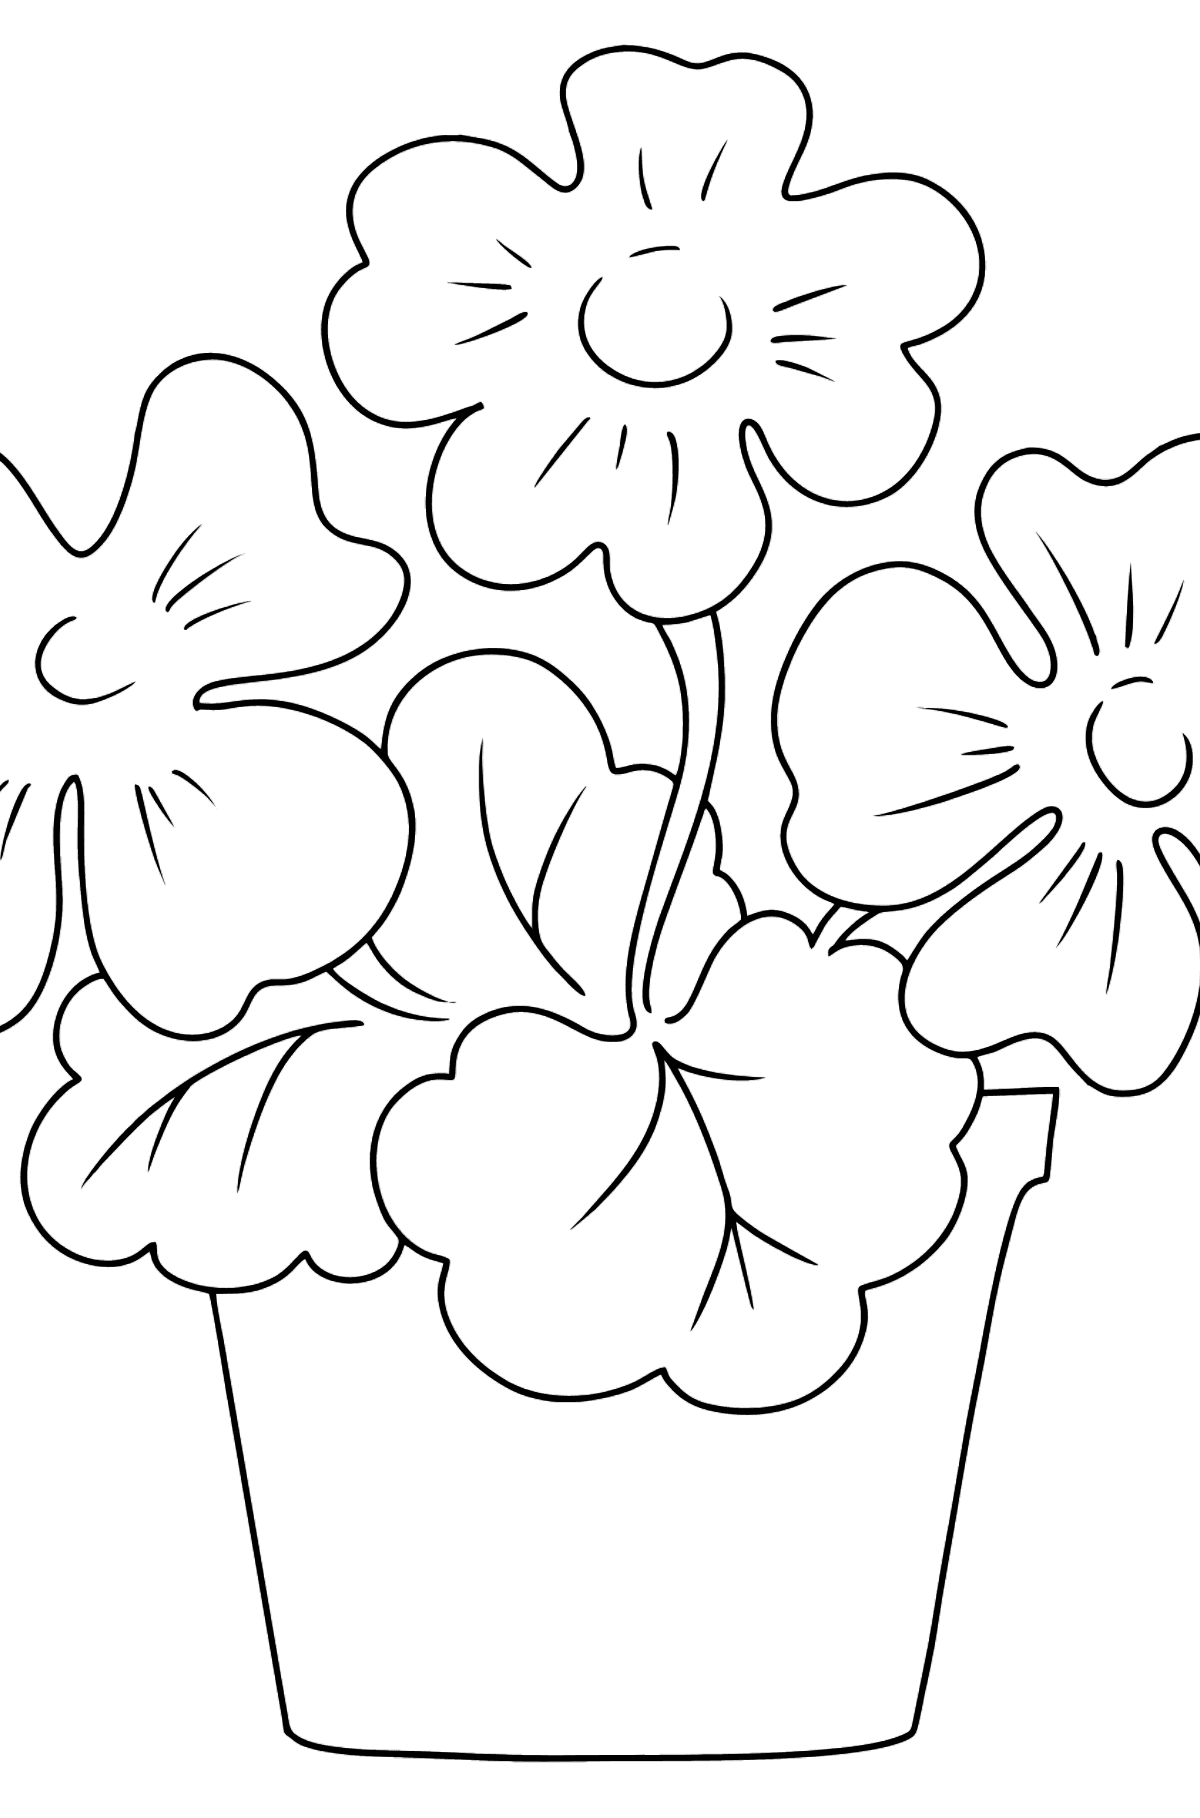 Coloring Page - flowers in a pot - Coloring Pages for Kids